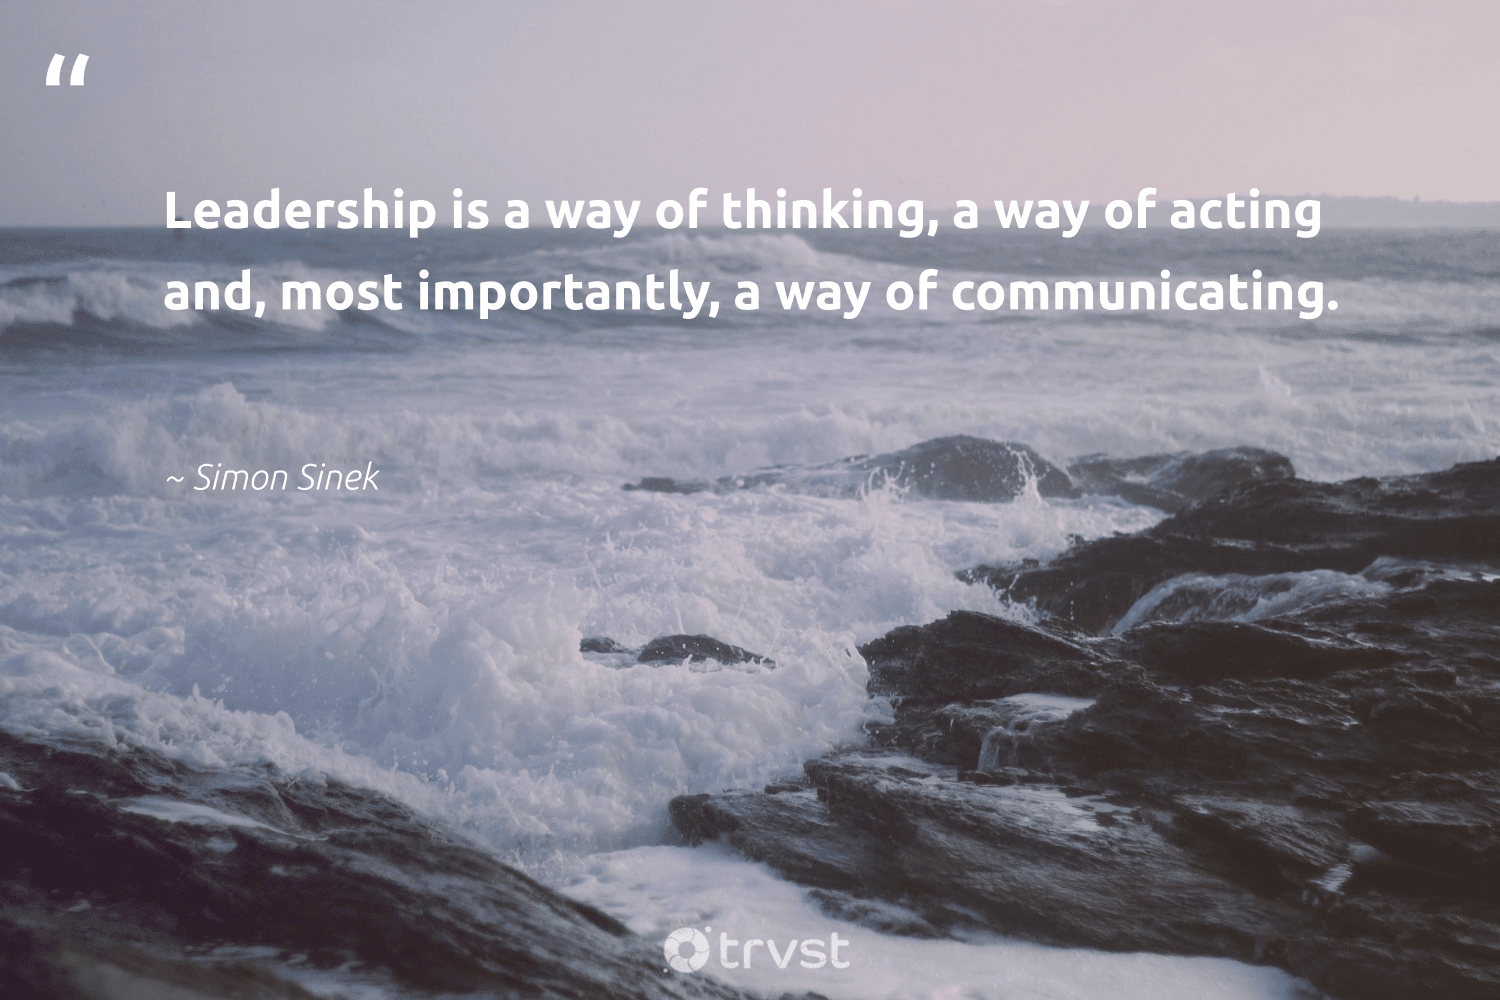 """Leadership is a way of thinking, a way of acting and, most importantly, a way of communicating.""  - Simon Sinek #trvst #quotes #leadership #leadershipdevelopment #begreat #nevergiveup #dotherightthing #leadershipskills #softskills #futureofwork #beinspired #leadershipqualities"